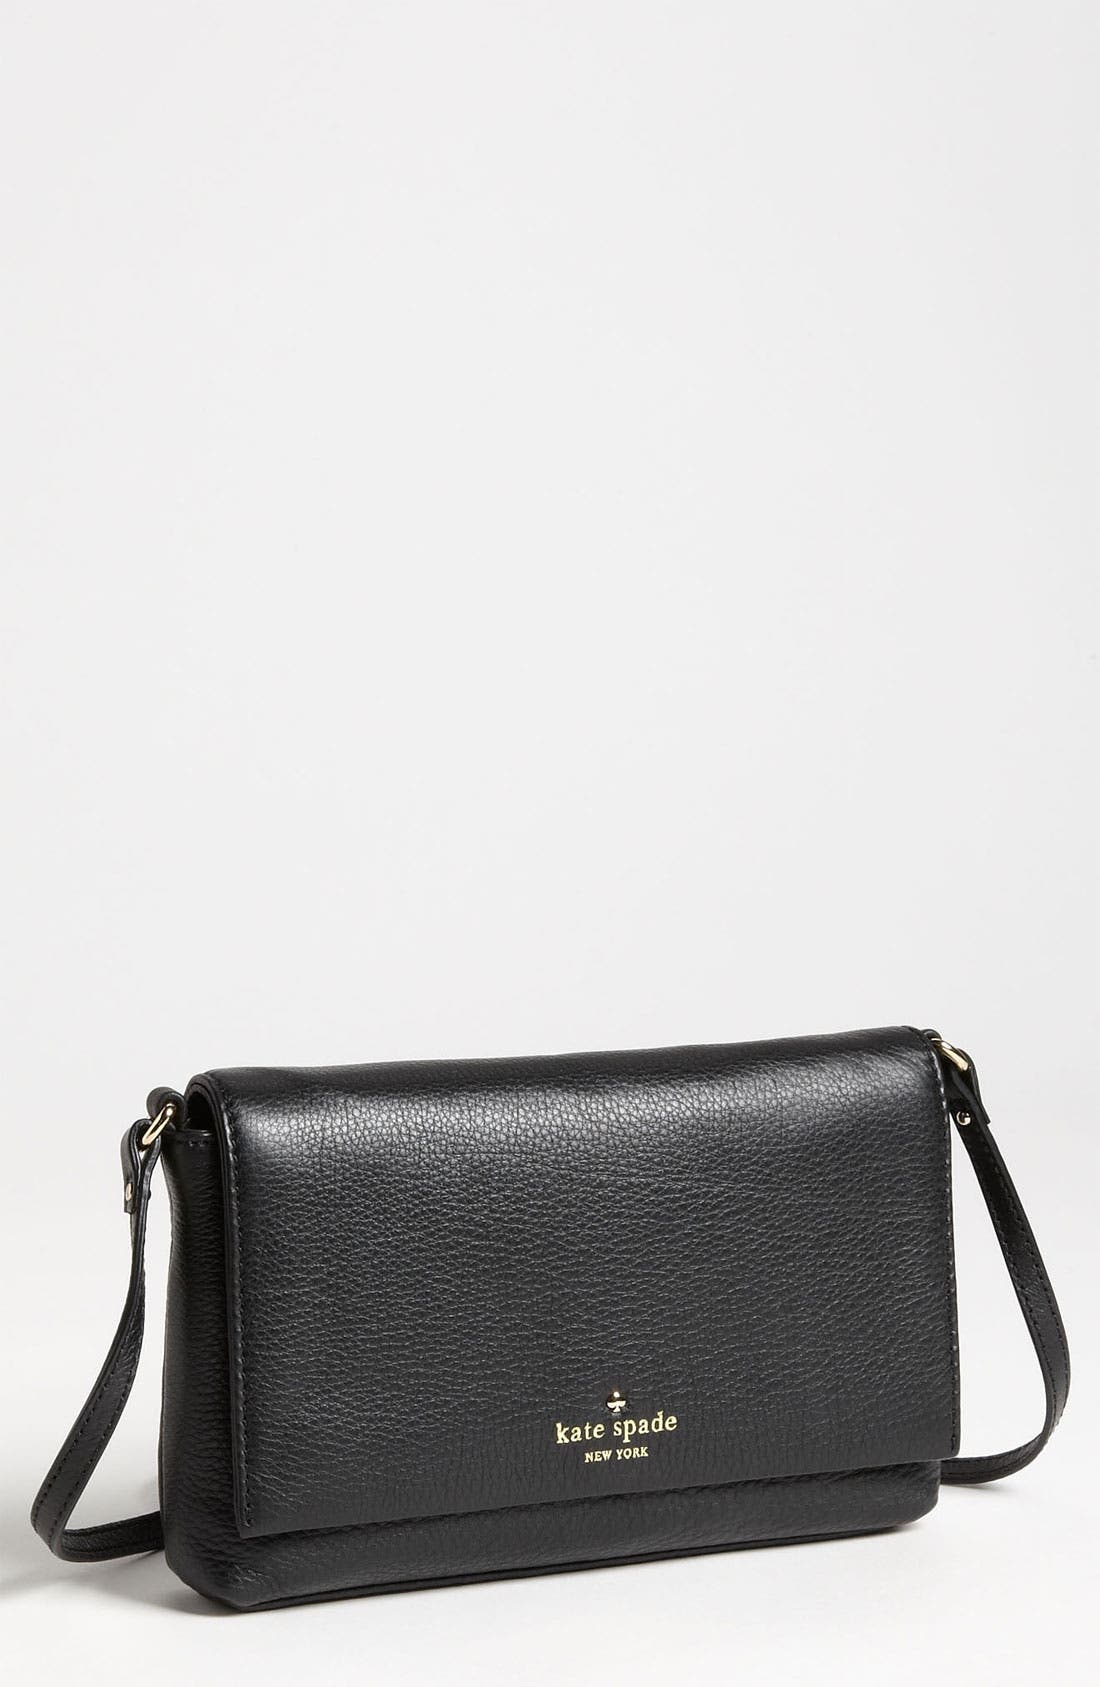 Main Image - kate spade new york 'cobble hill - kristie' leather crossbody bag